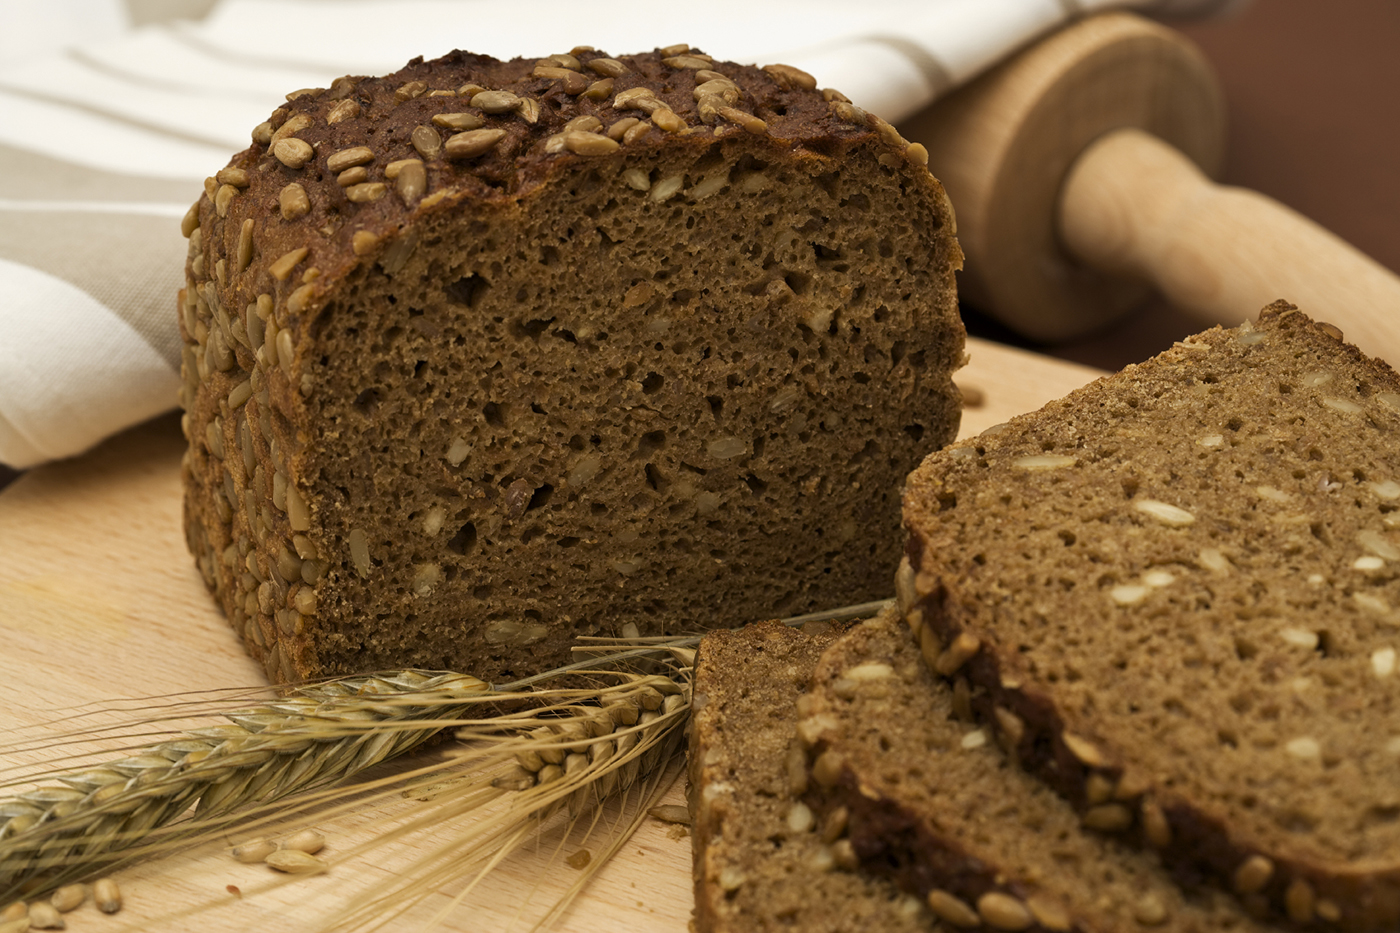 """Experts say eating whole grains will make you live longer… But eating this """"health food"""" every day sets you up for some of the deadliest diseases around."""